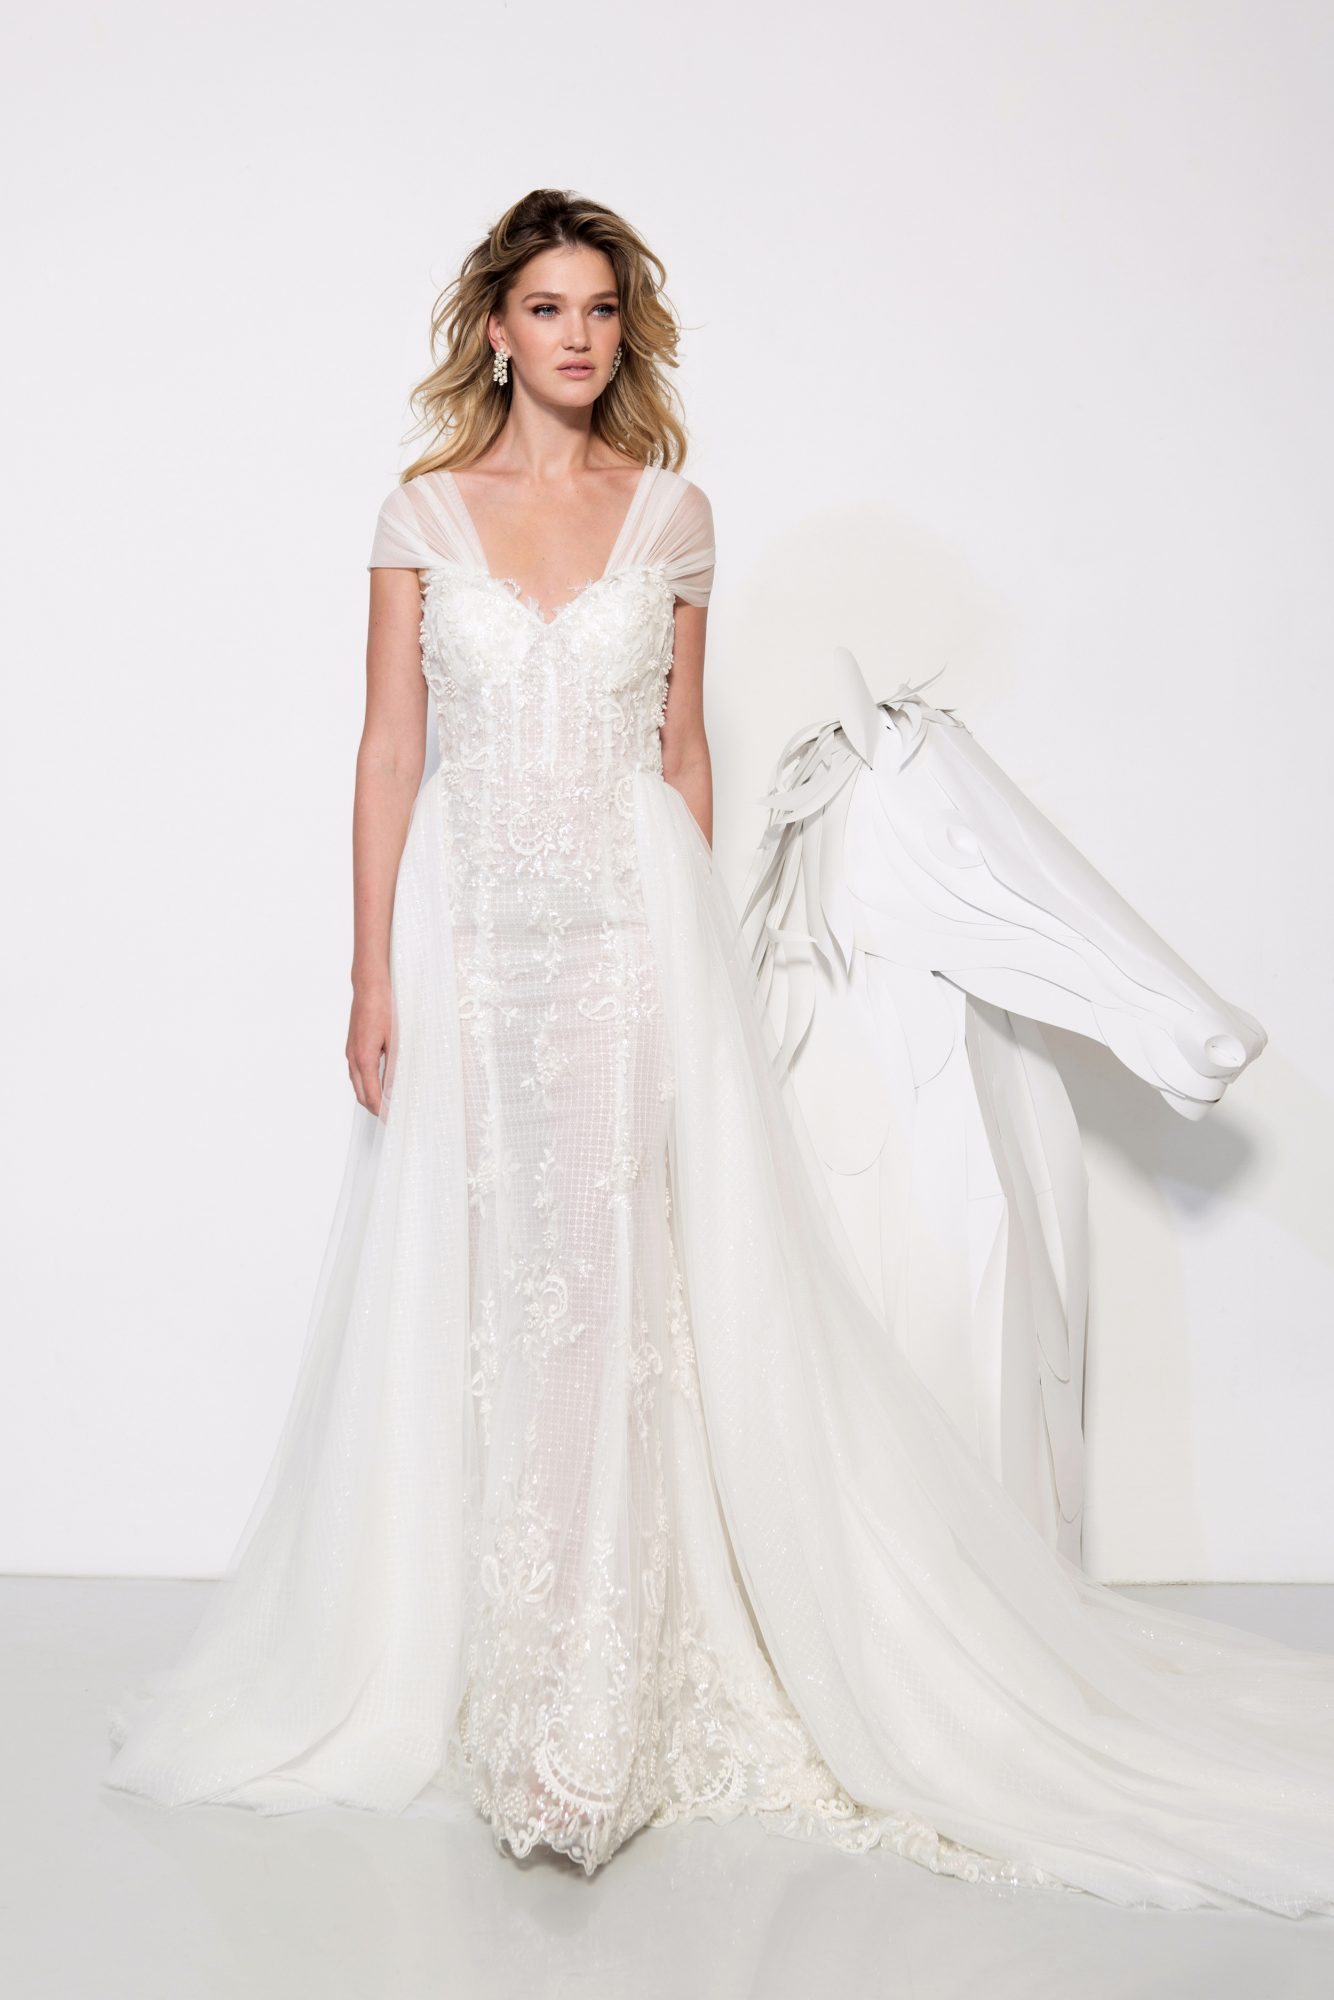 persy wedding dress spring 2019 lace a-line cap sleeve gown